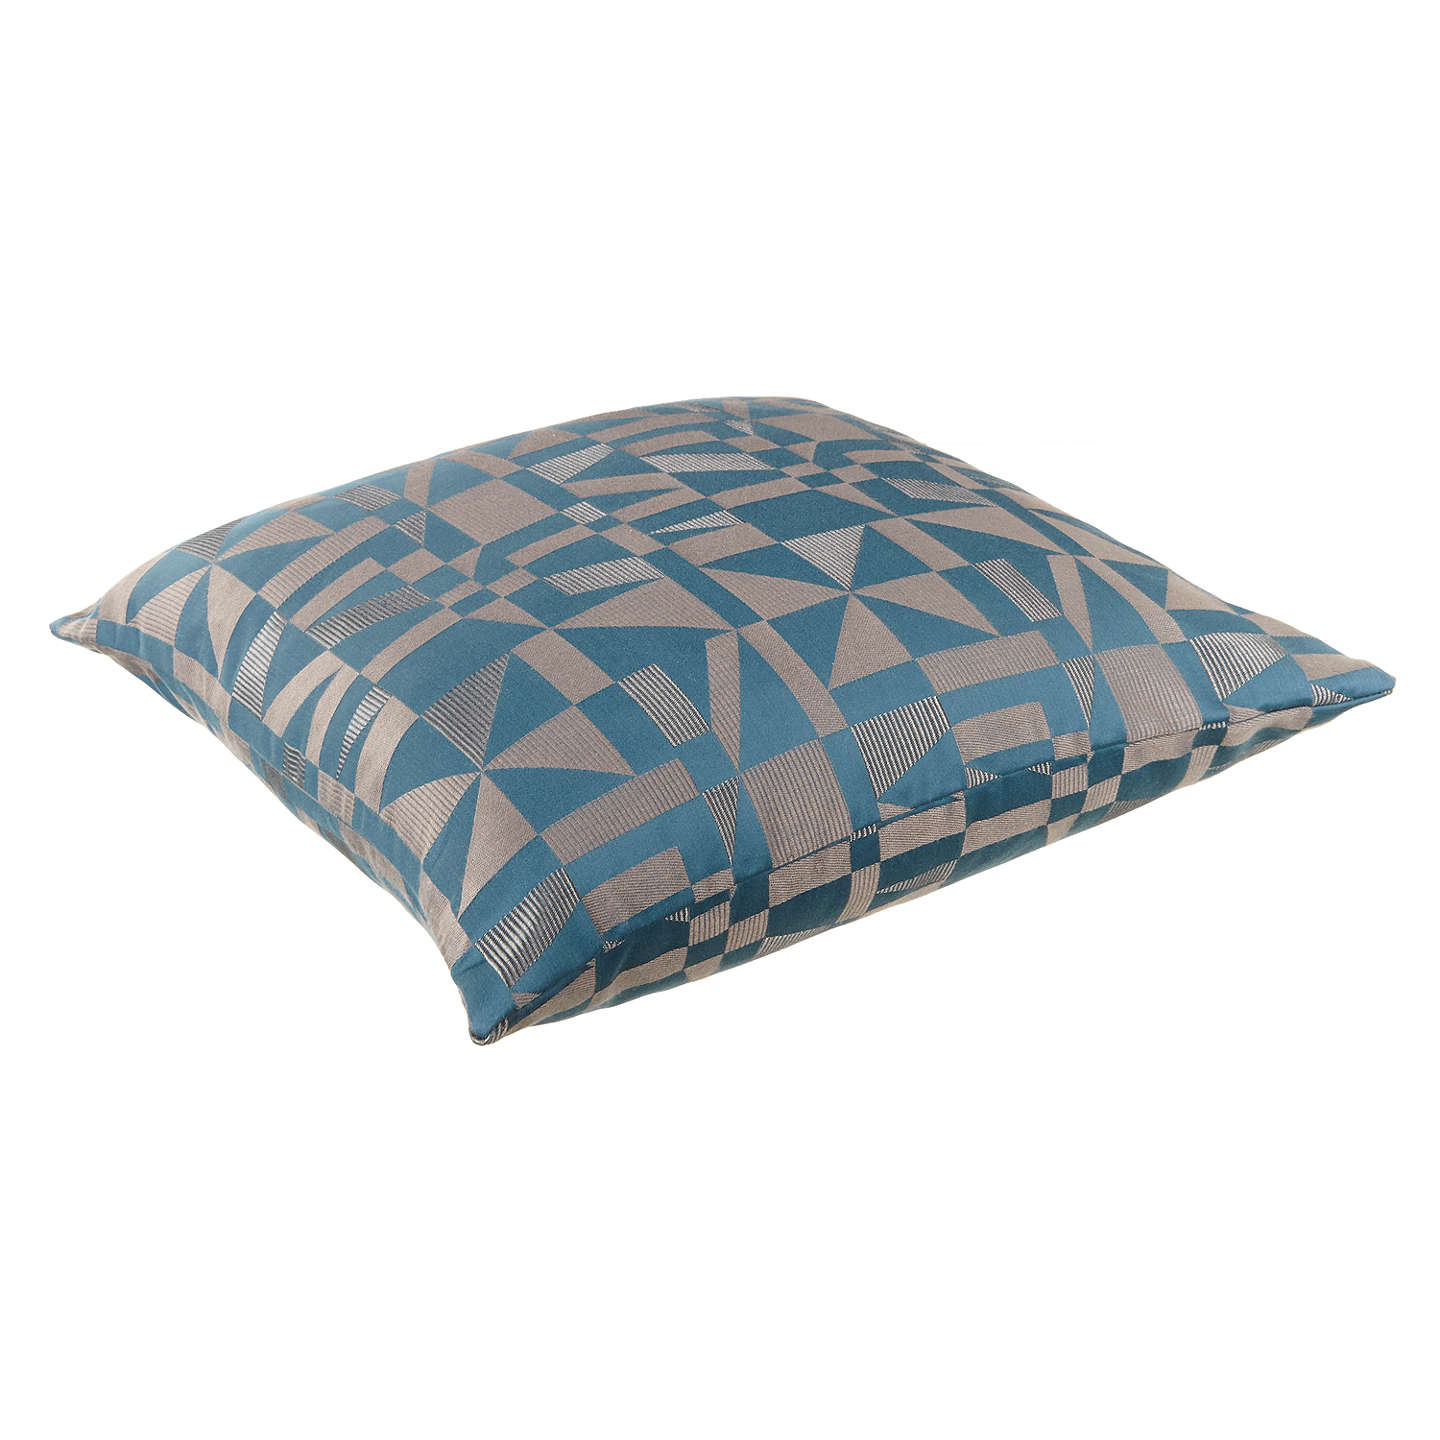 BuyHarlequin Rotation Cushion, Kingfisher Online at johnlewis.com